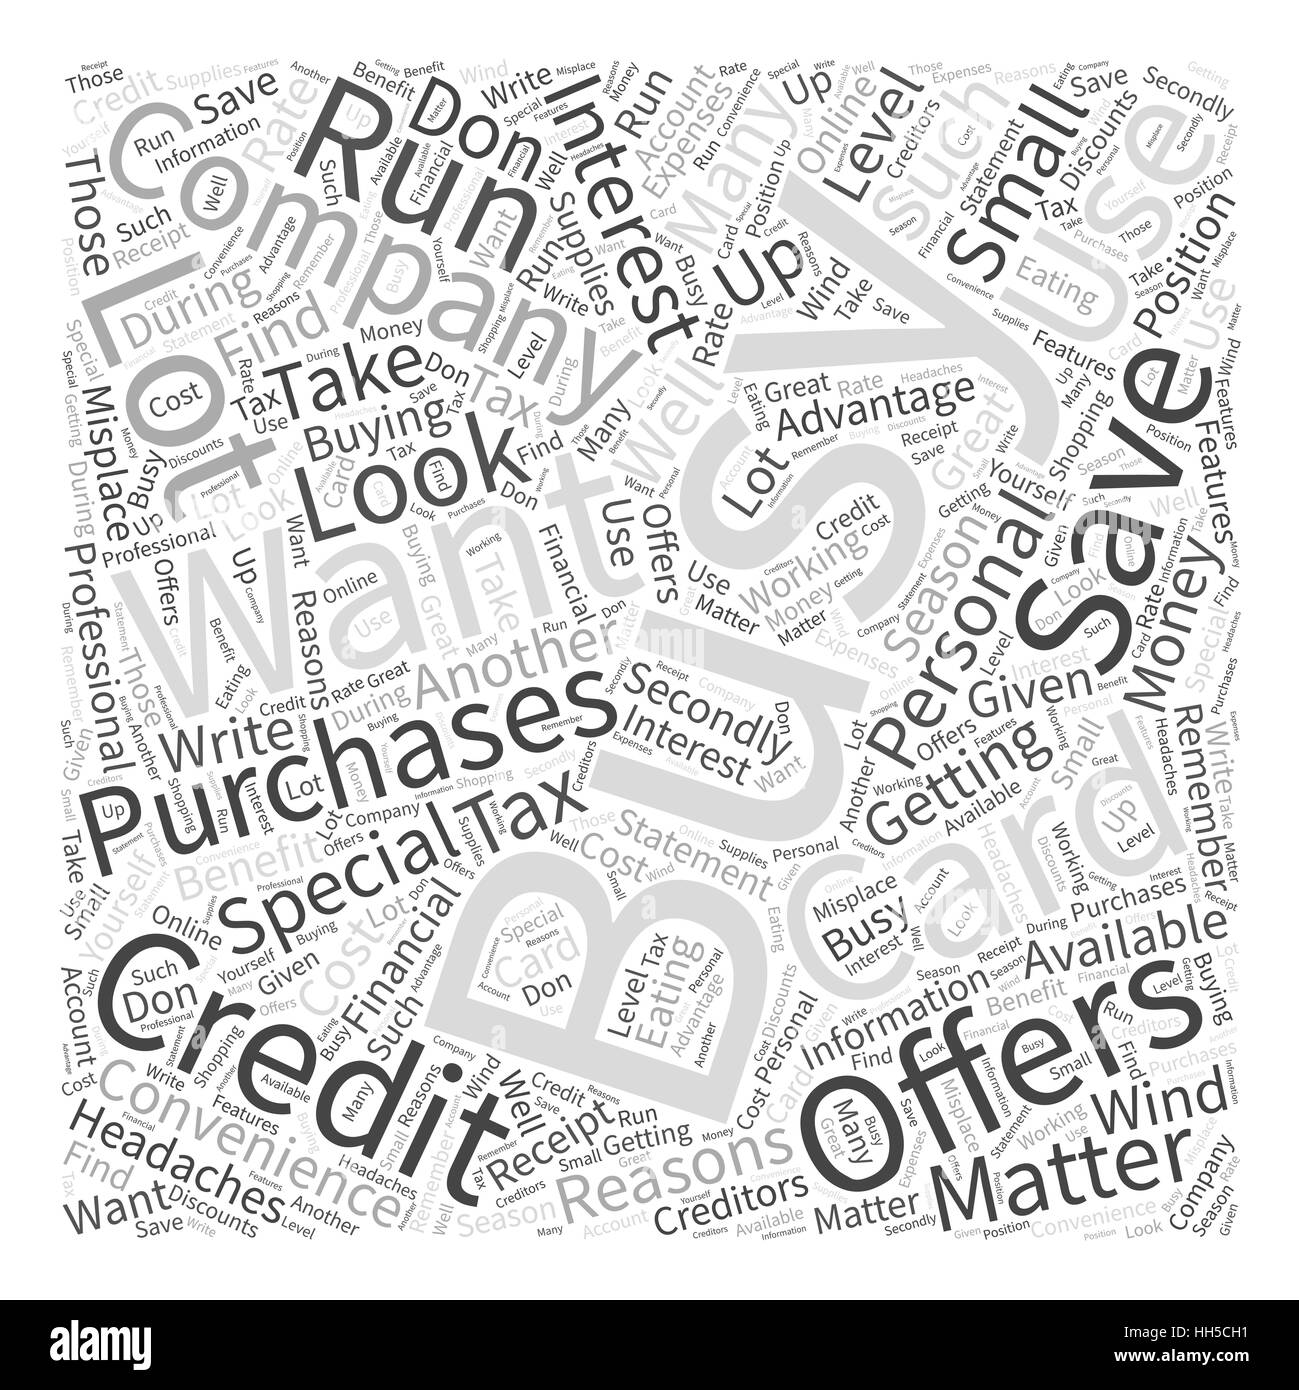 Credit card company black and white stock photos images alamy business credit card for word cloud concept stock image reheart Image collections